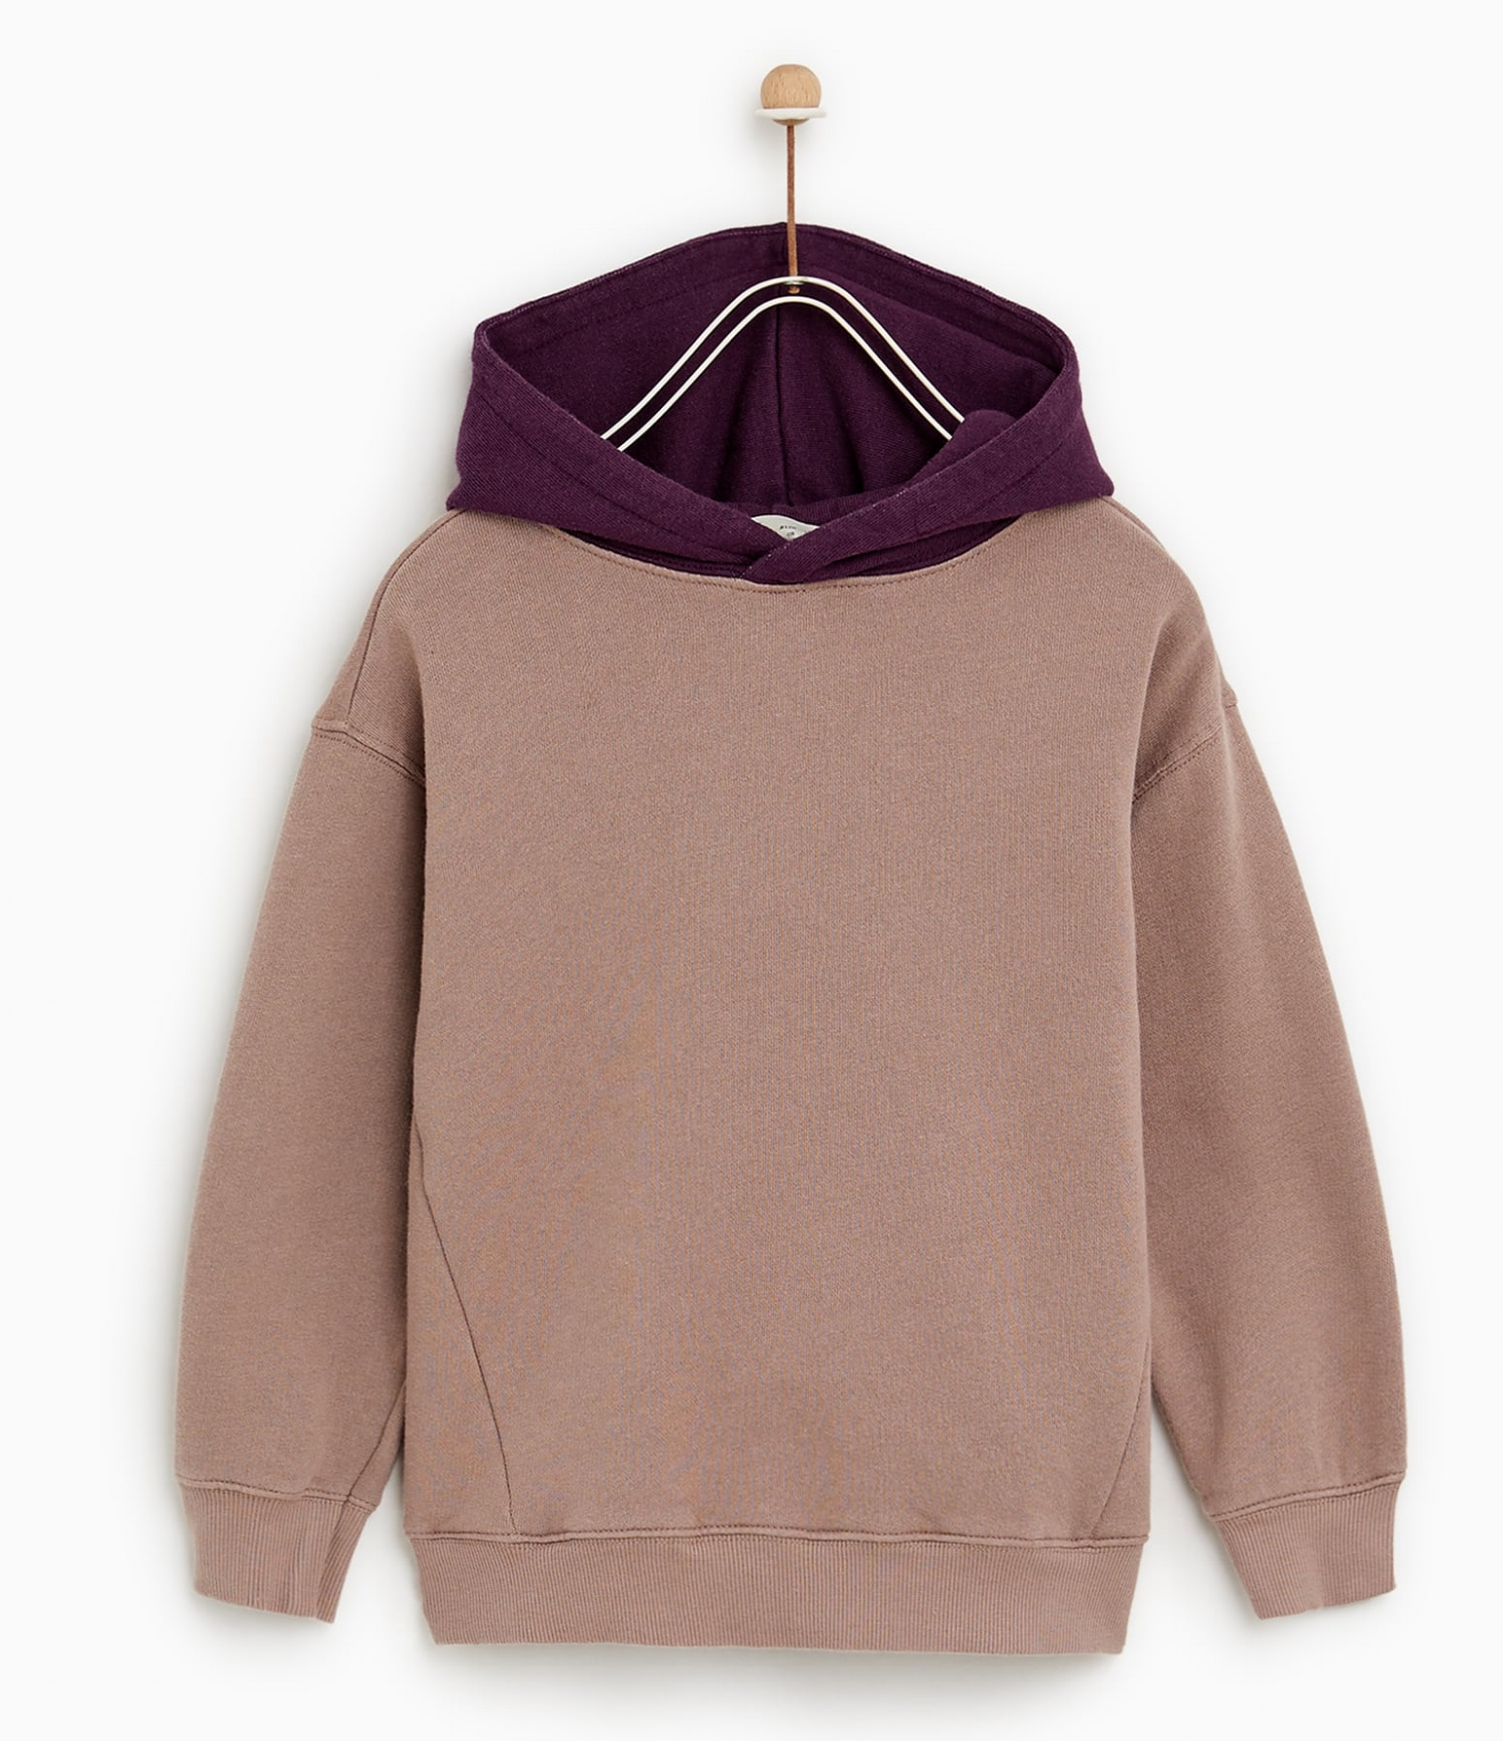 Hoodie - Ultra-cosy and in really nice colours, Zara's hoodies are a gem this season. We love this purple and washed plaster pink one.£14.99Zara